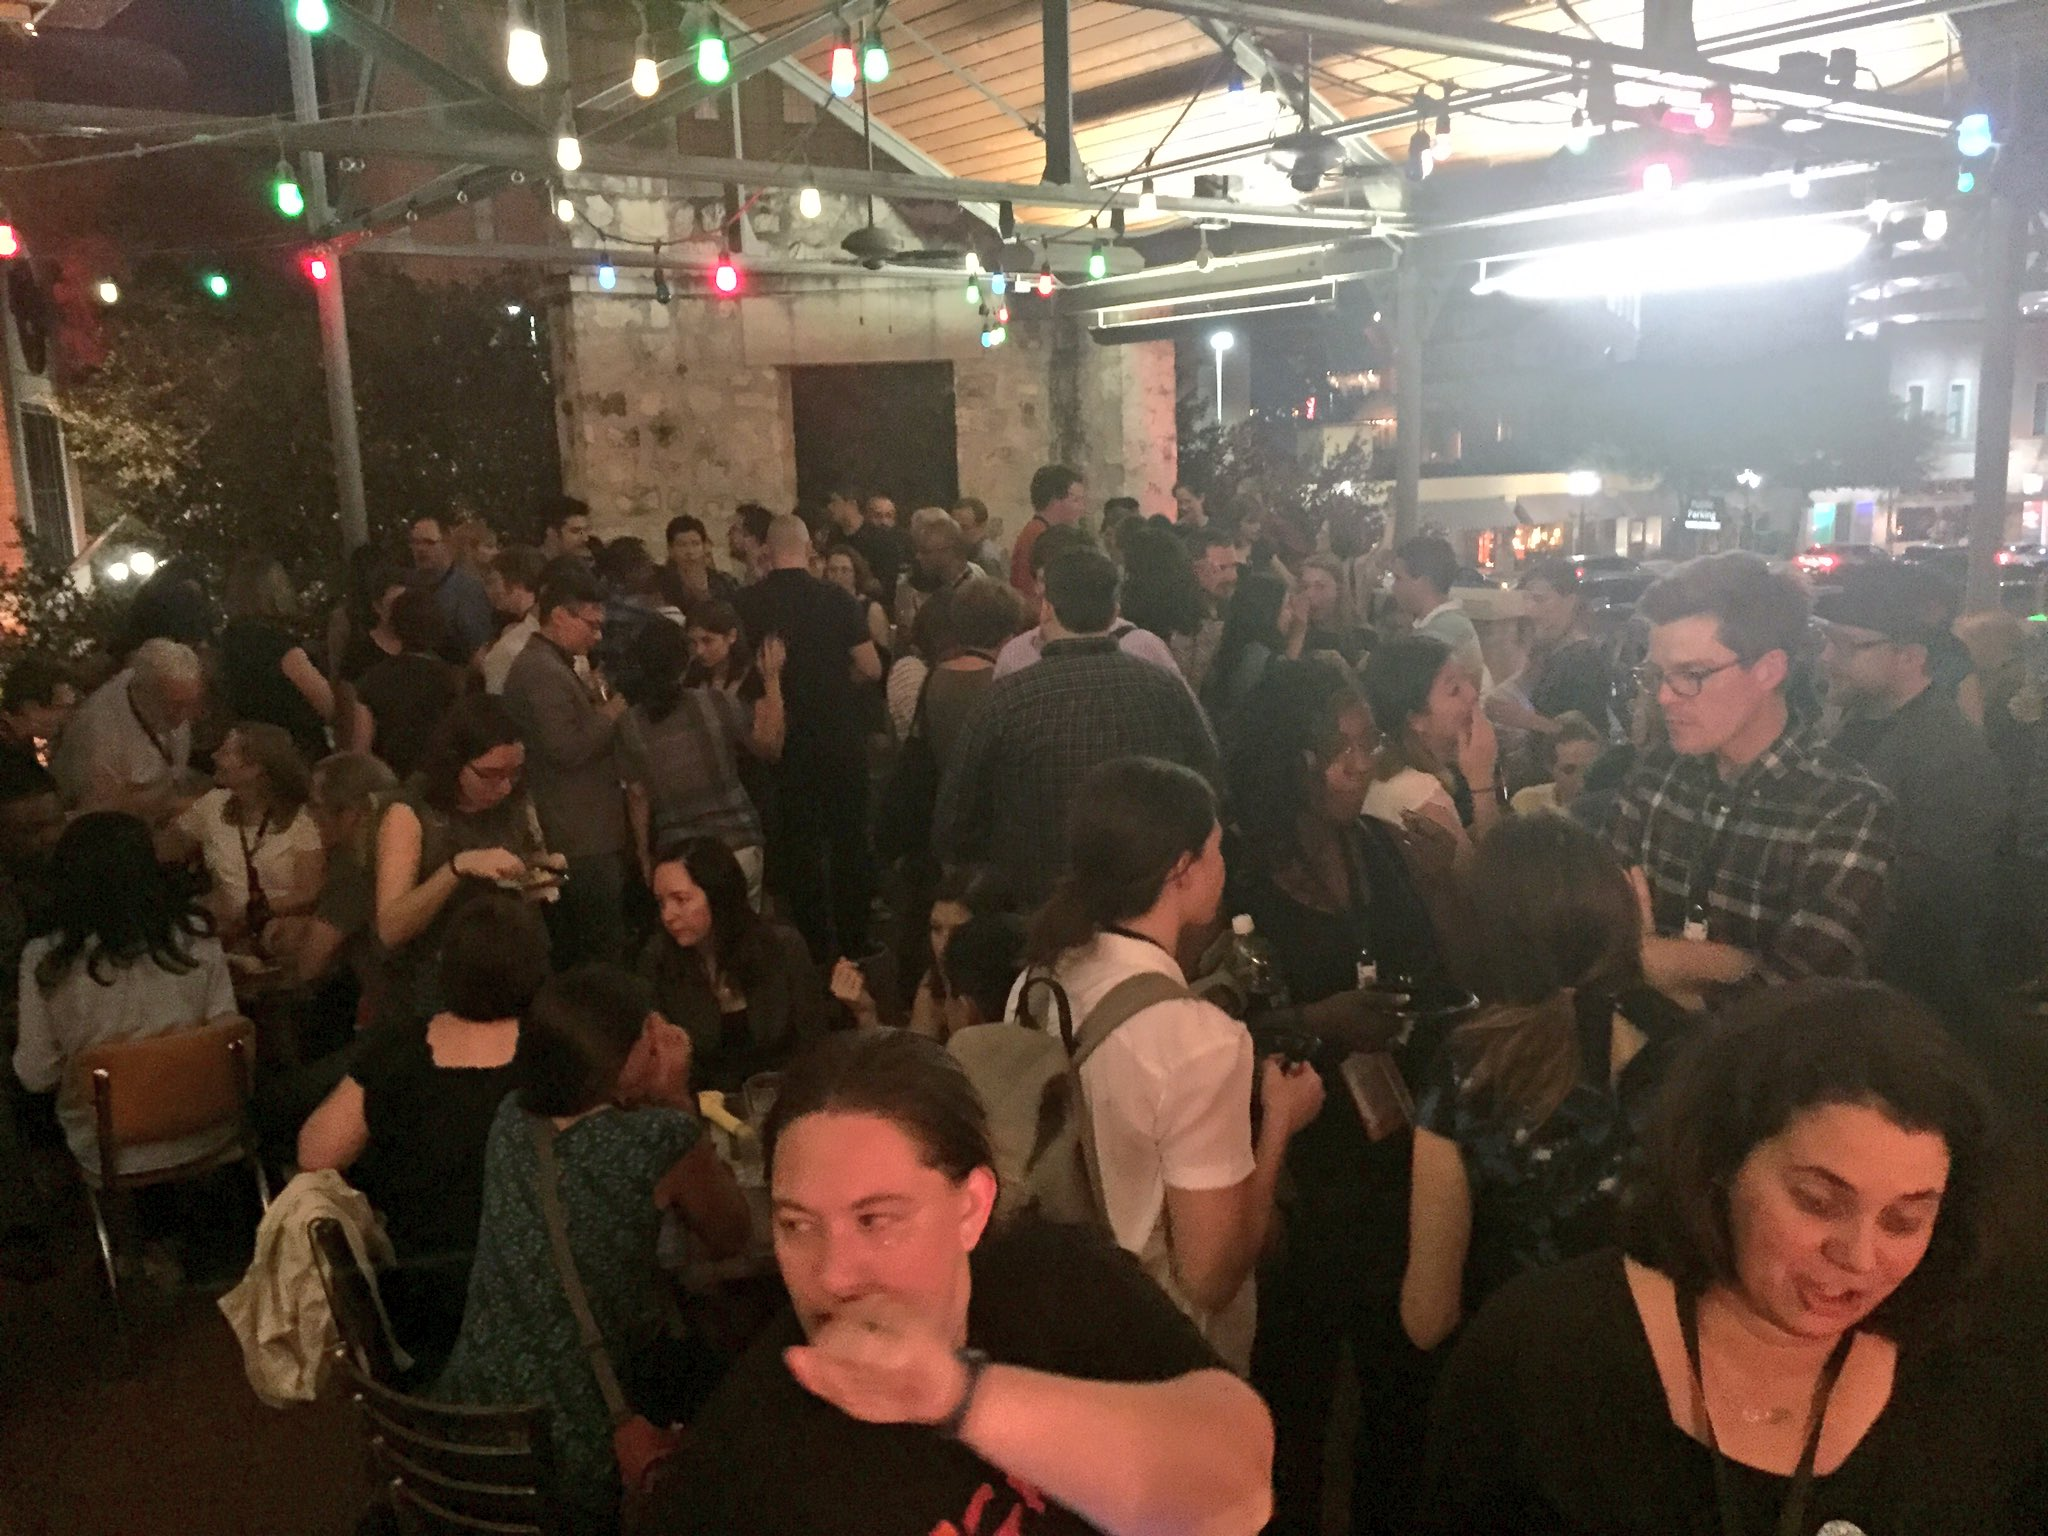 This was the scene at the packed diversity mixer tonight. A HUGE thanks to everyone that attended! #sciwri16 https://t.co/hwapuLPcwp